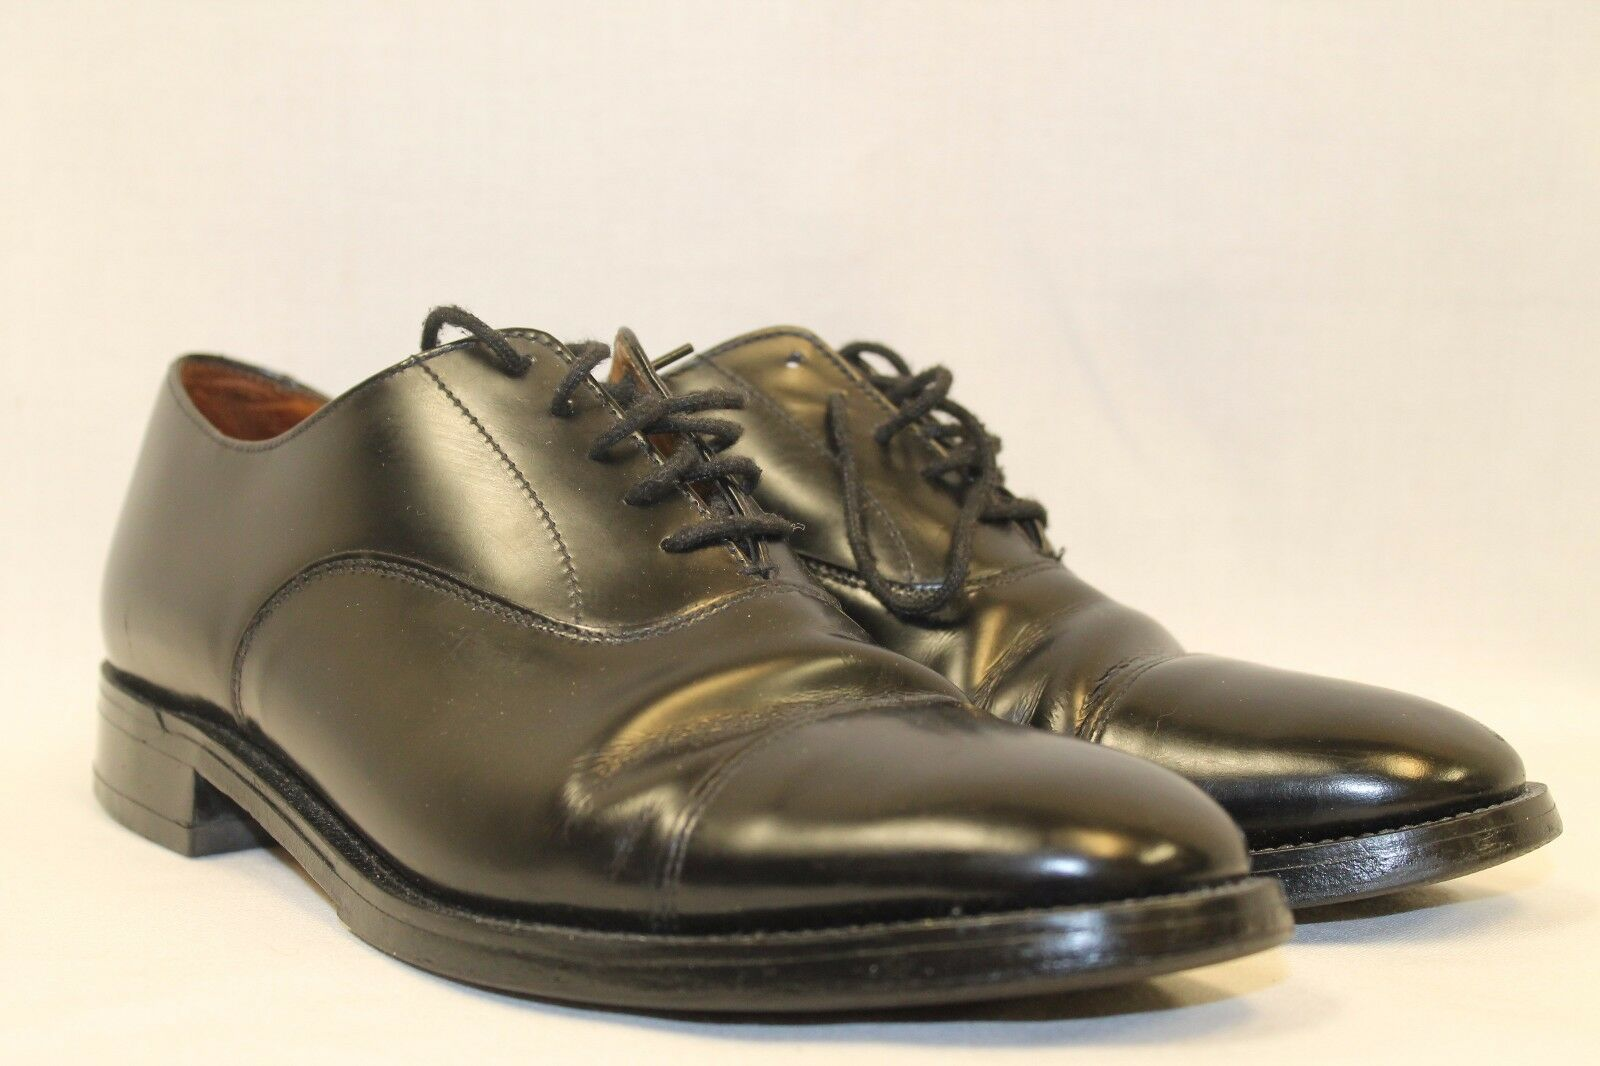 CHARLES HORRELL schwarz LEATHER OXFORDS US 8.5 M BENCH MADE ENGLAND